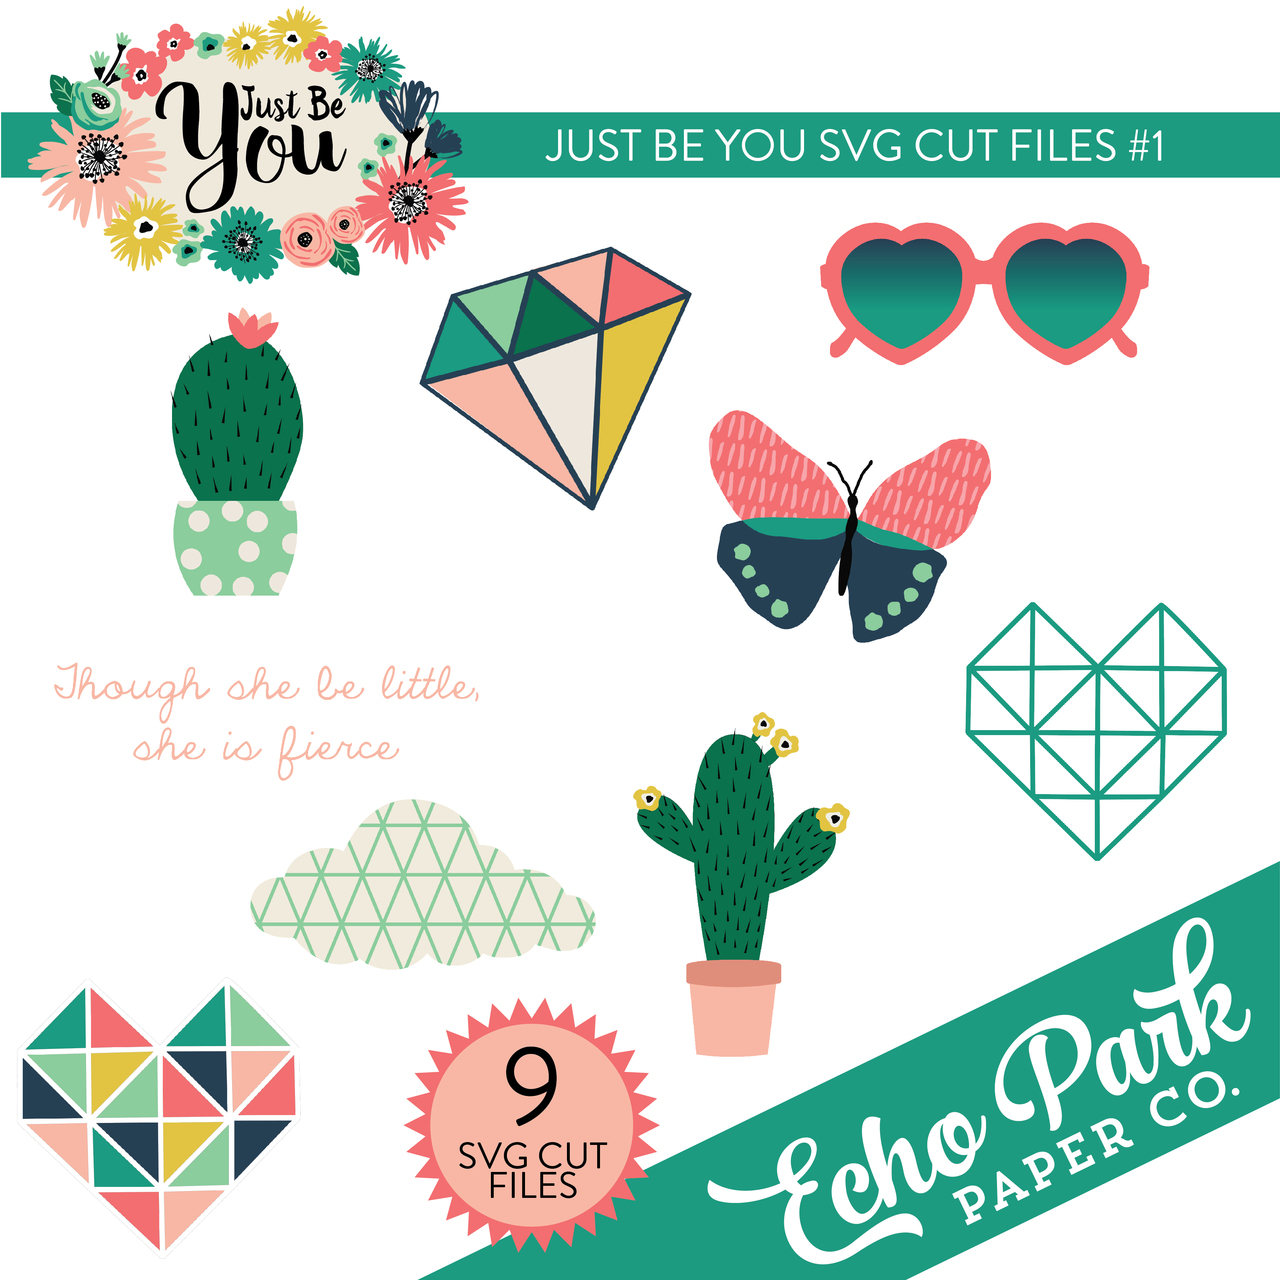 Just Be You SVG Cut Files #1